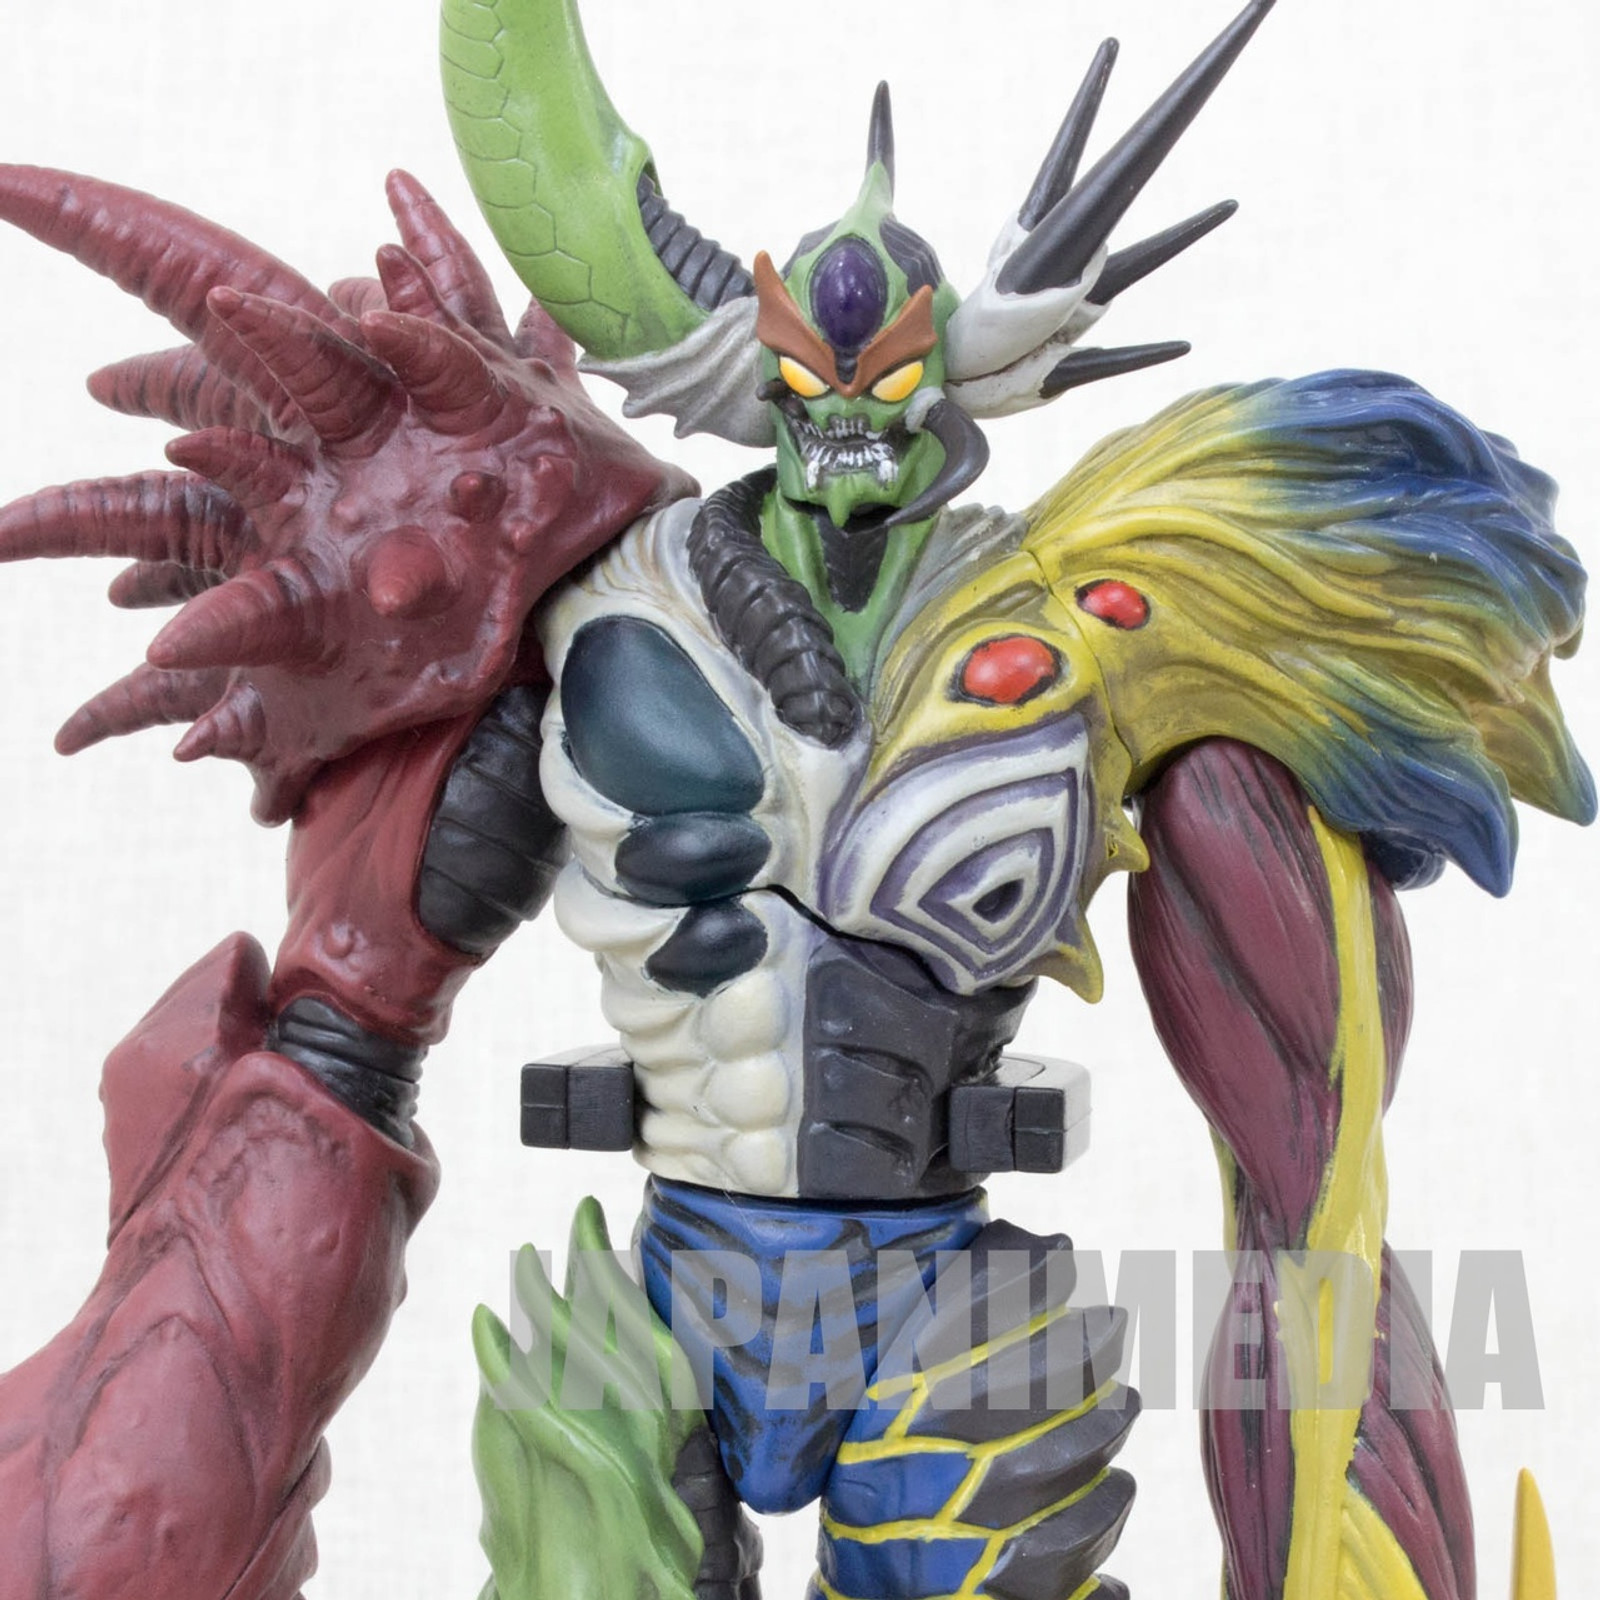 Guyver the Bioboosted Armor Extra Battle Creature Evilaptom Soft Vinyl Figure